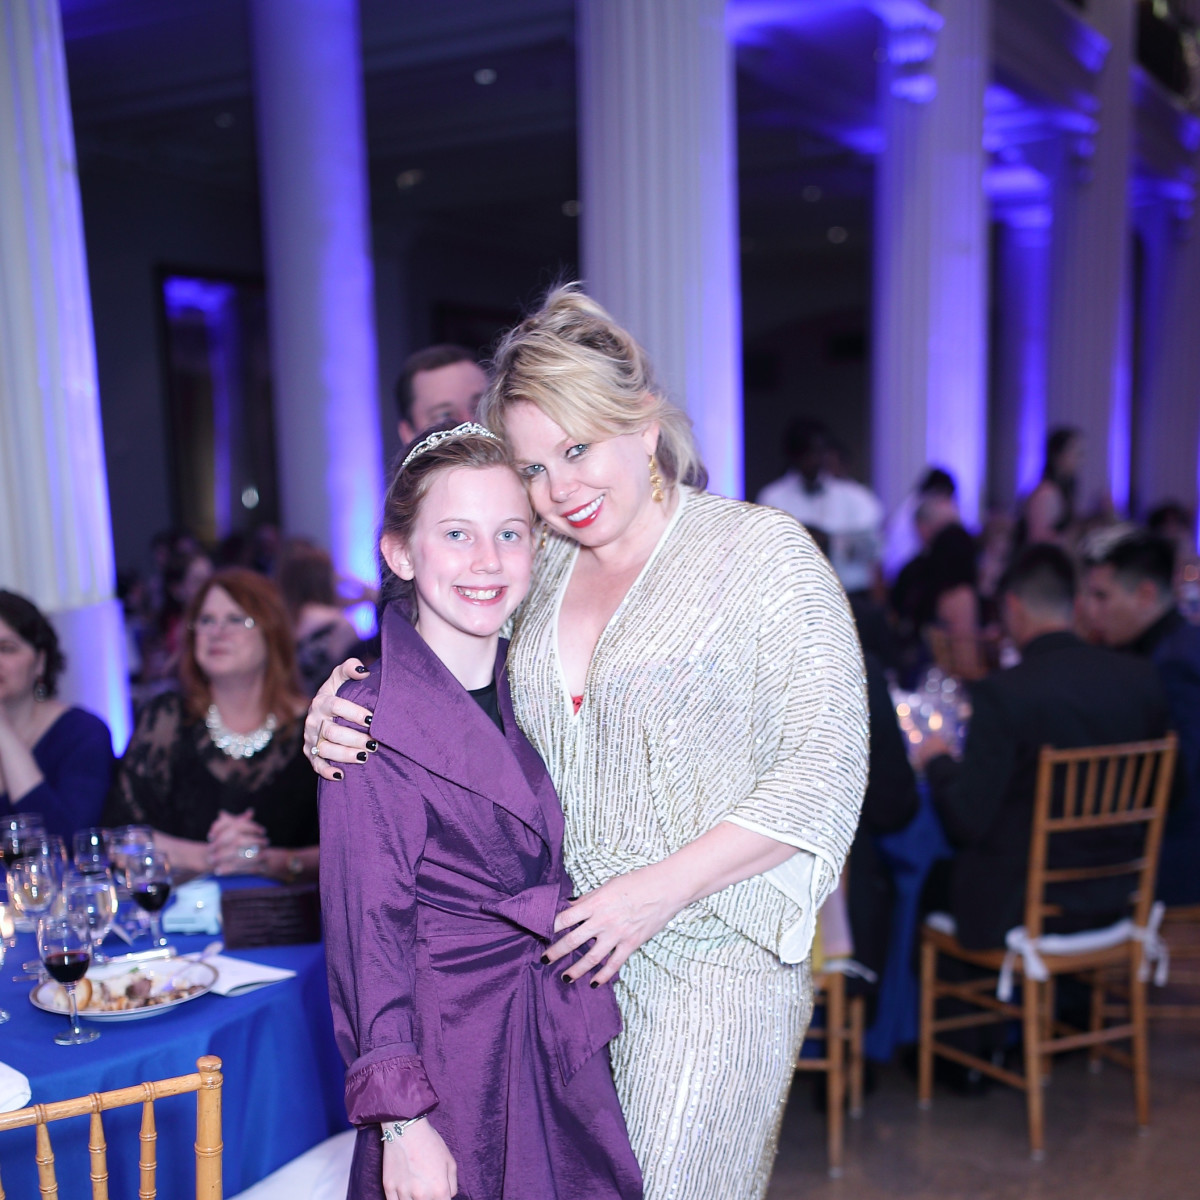 Tammy Dowe and daughter Lillian at Denali Gala